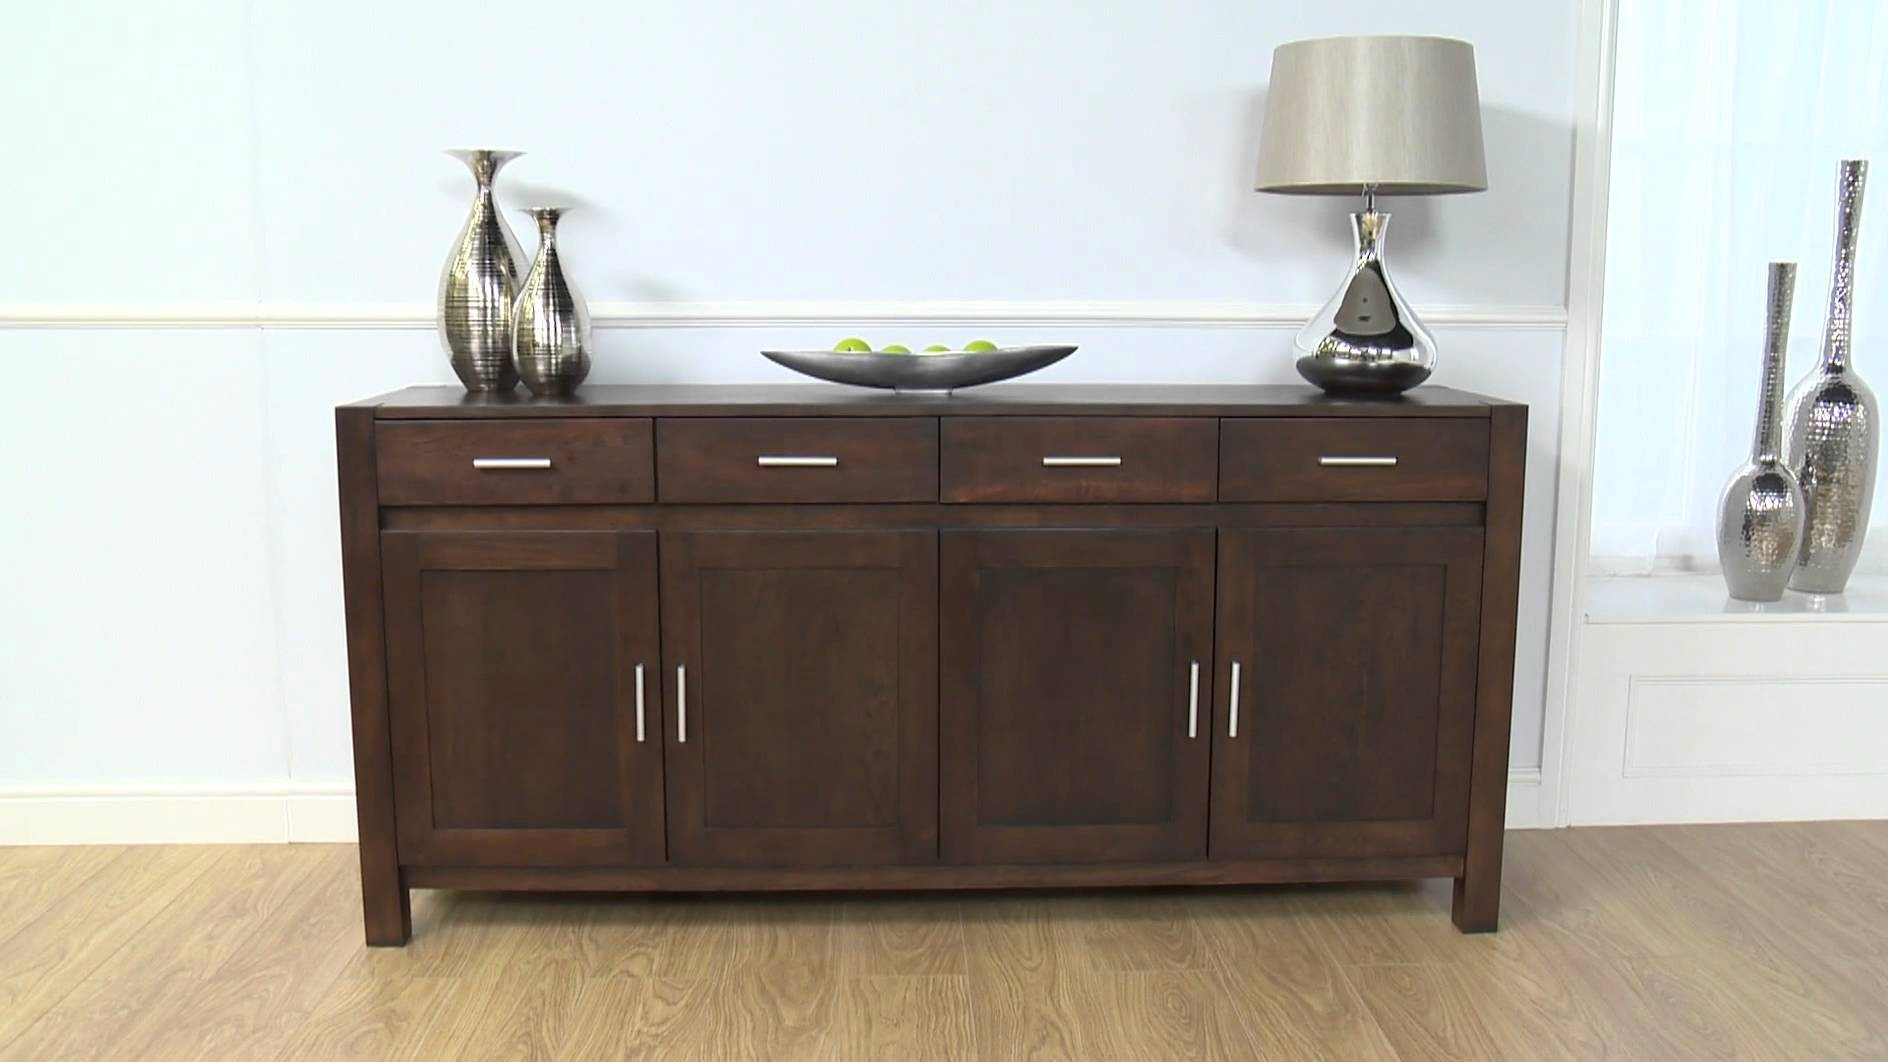 Dark Wood Sideboard: Verona Dark Oak Sideboard Xl - Youtube within Small Dark Wood Sideboards (Image 9 of 30)